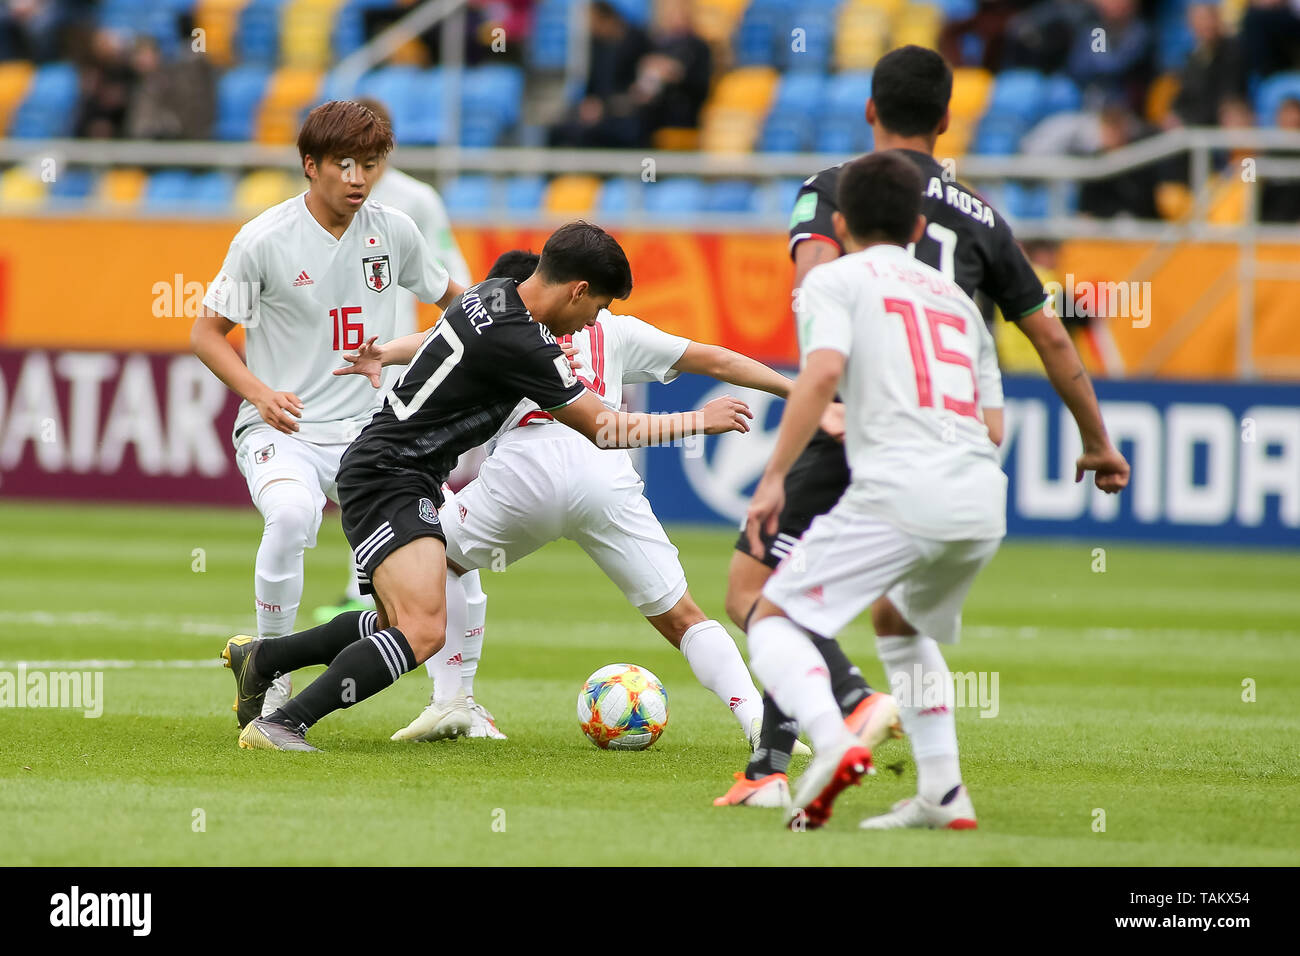 Gdynia Stadium, Gdynia, Poland - 26th May, 2019: Kota Yamada(L) from Japan and Diego Lainez (CL) from Mexico seen in action during FIFA U-20 World Cup match between Mexico and Japan (GROUP B) in Gdynia. (Final score; Mexico 0:3 Japan) - Stock Image